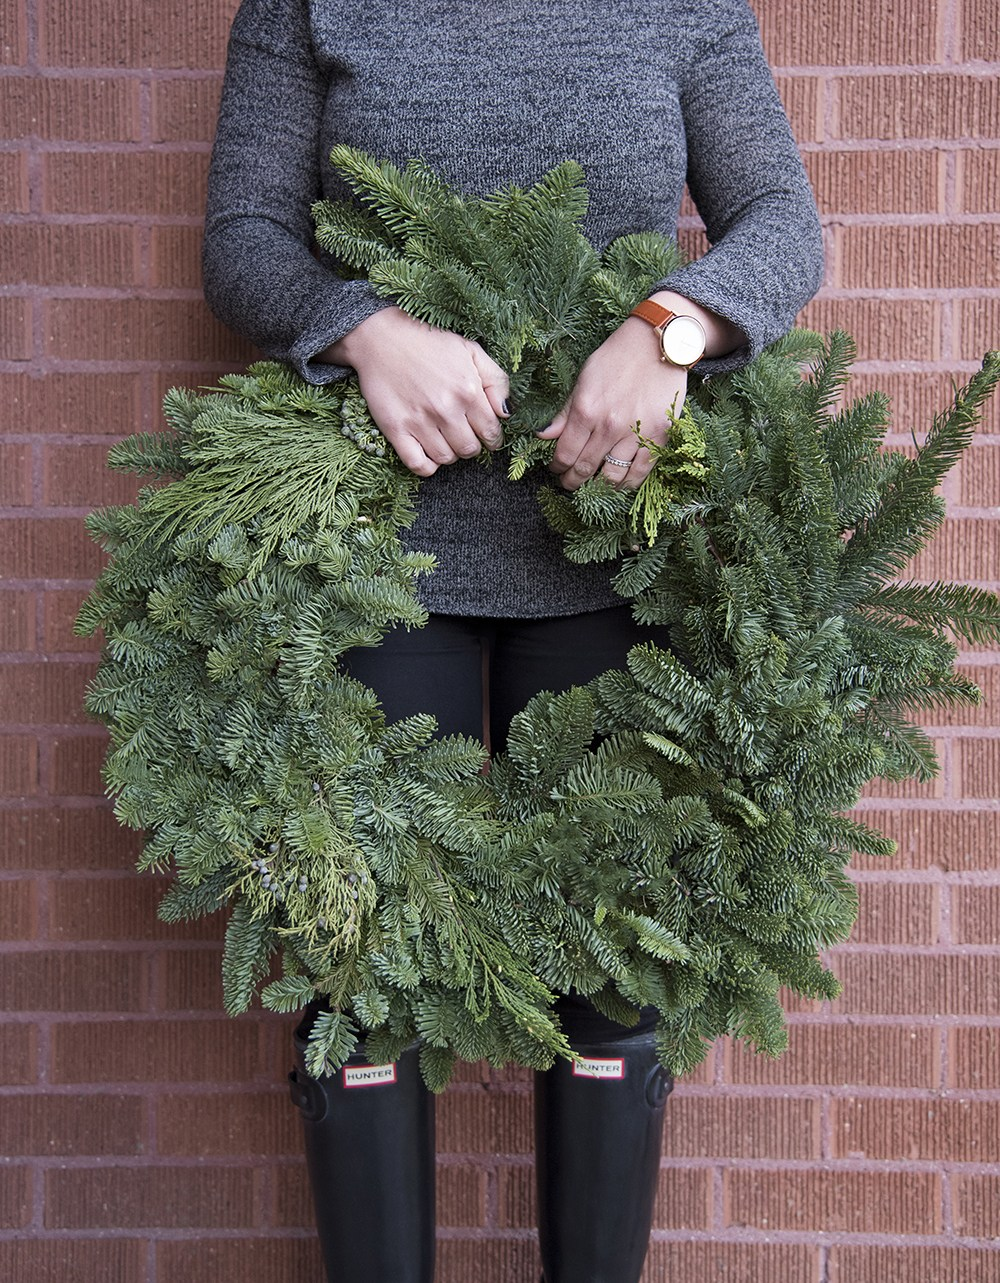 10 Holiday Posts To Inspire & Bring Cheer (...A Bit Early) - roomfortuesday.com